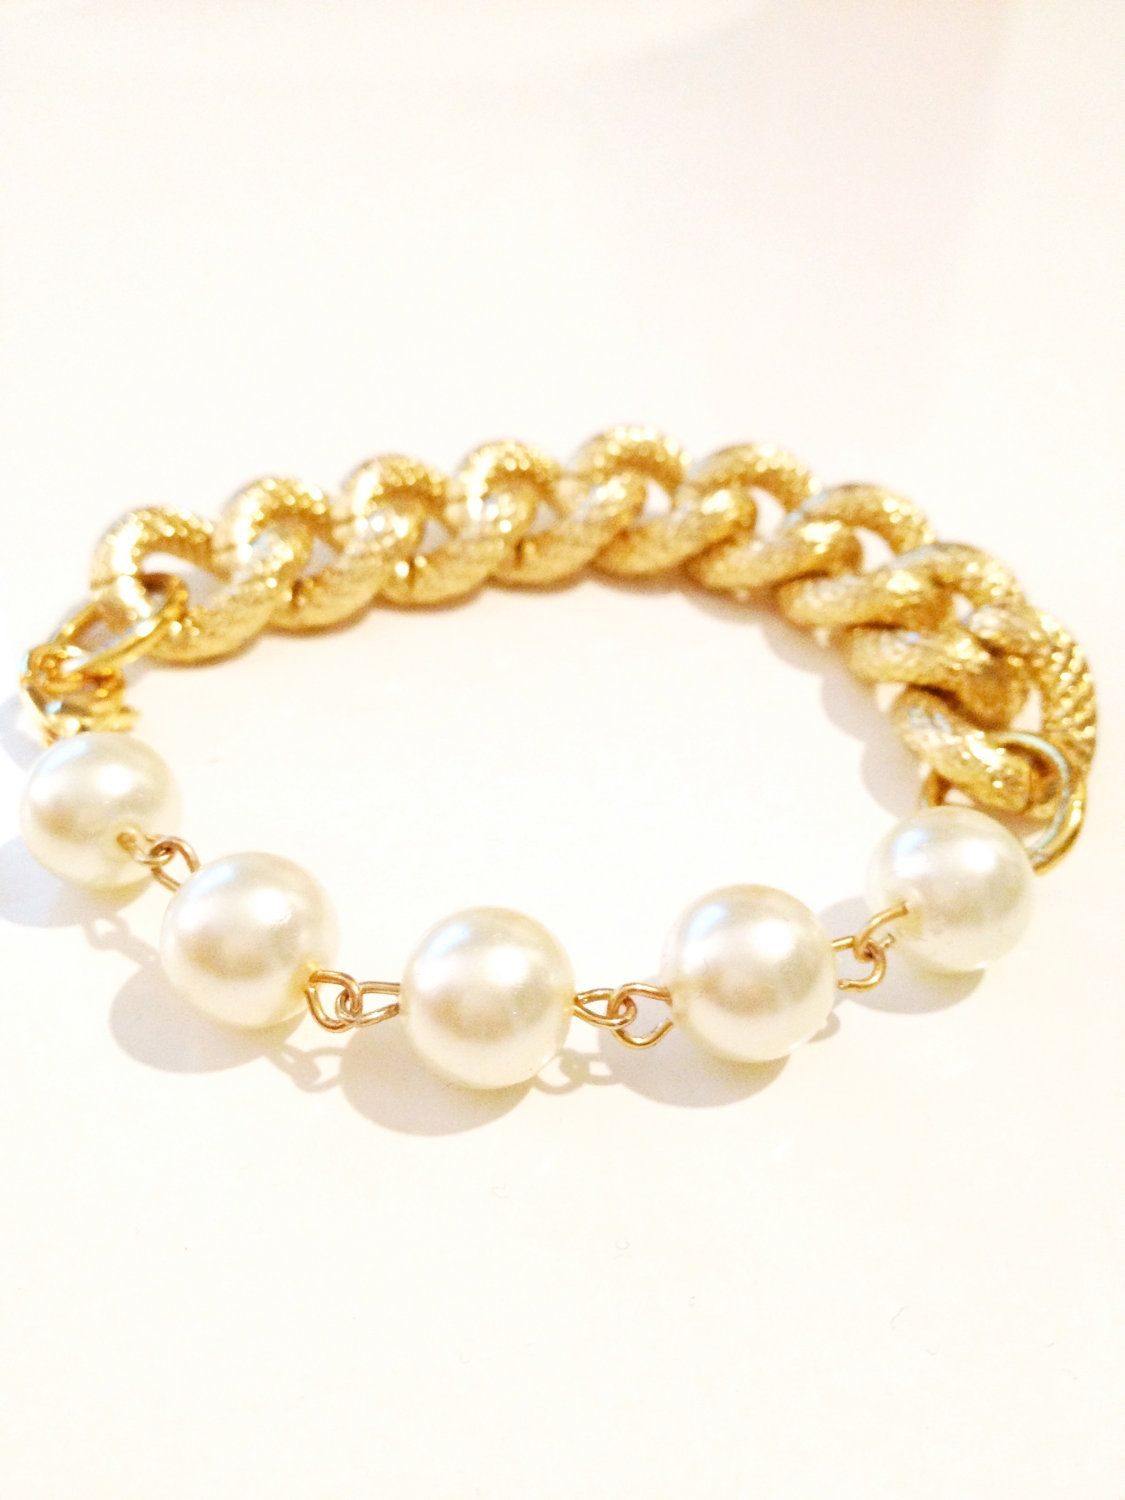 Coco bfrend bracelet gold chunky chain with large pearls pearls